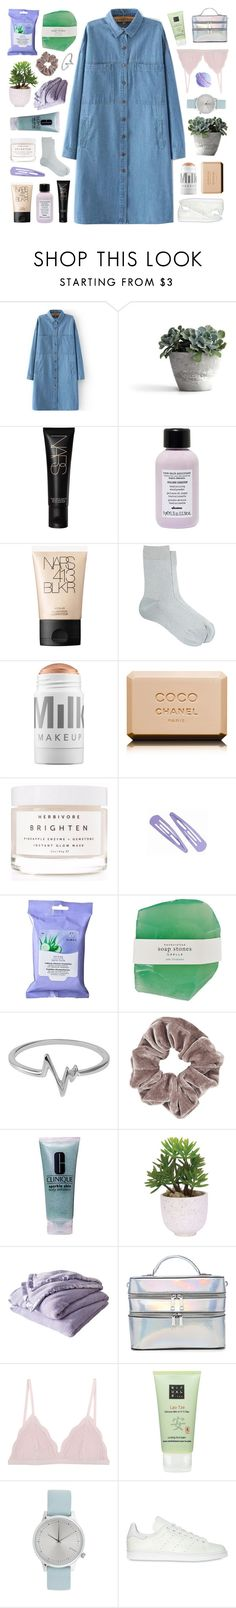 """""""driving at 90 down those country lanes"""" by deep-breaths ❤ liked on Polyvore featuring NARS Cosmetics, Davines, Maria La Rosa, MILK MAKEUP, Chanel, Herbivore, Almay, Jewel Exclusive, Topshop and Clinique"""